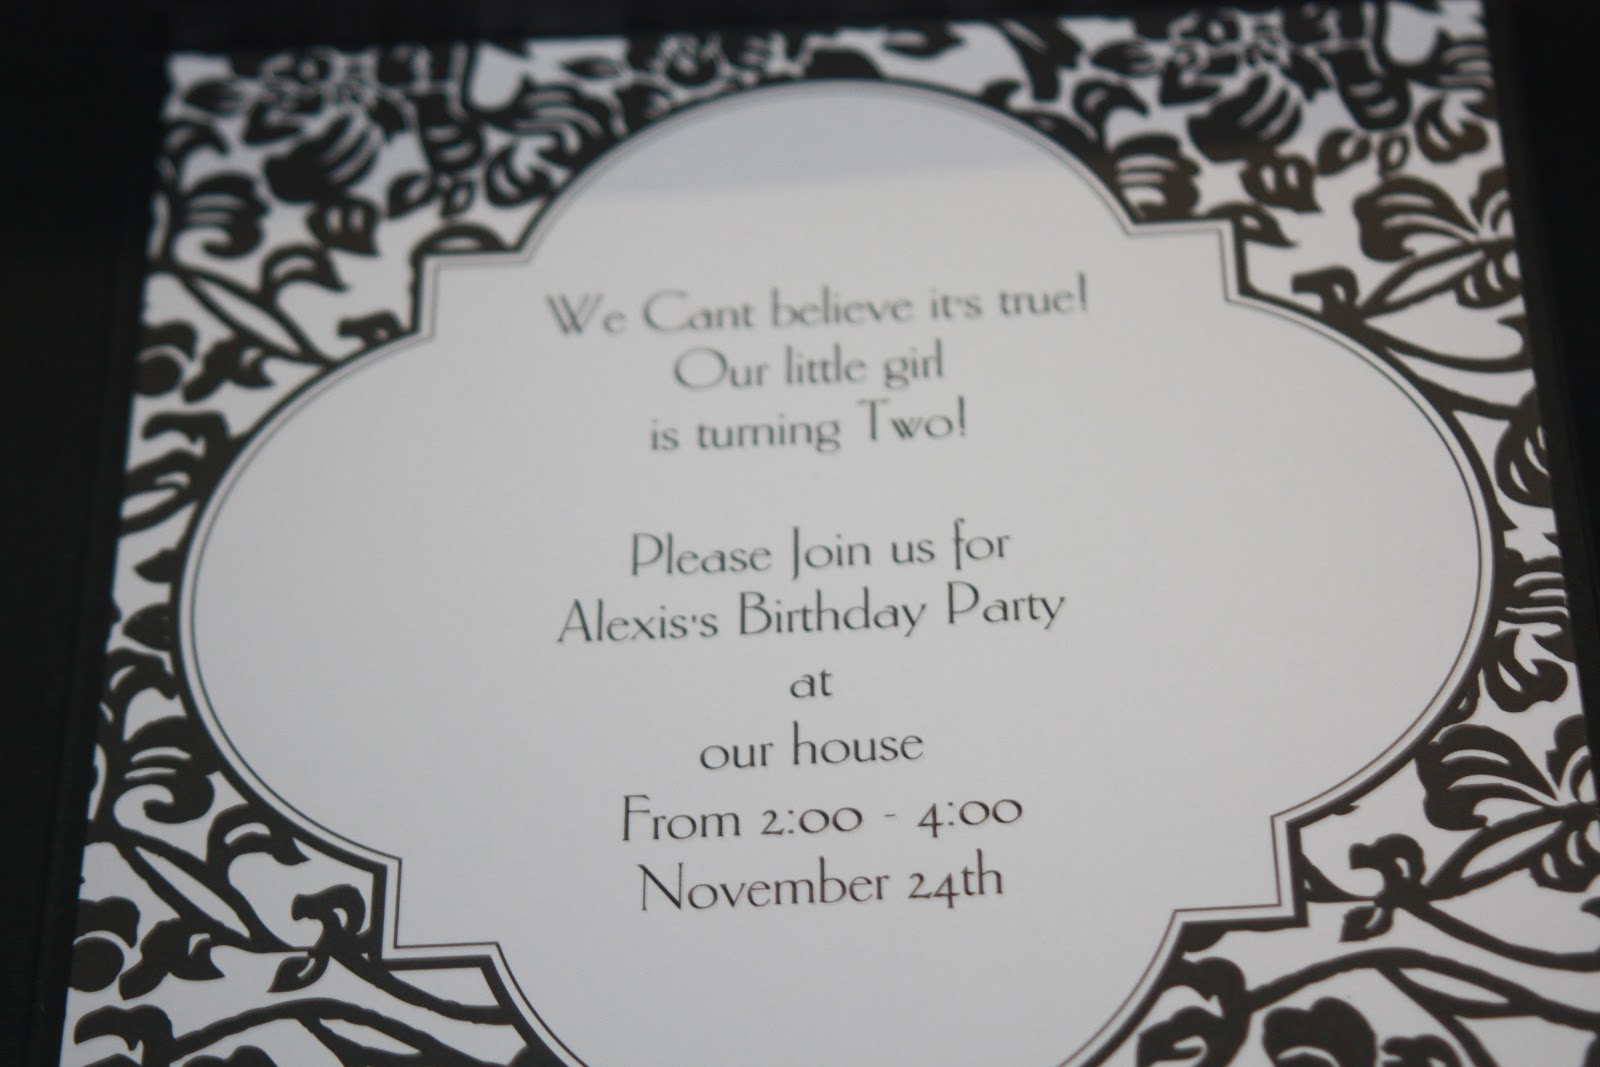 wilton print templates - wedding invitation wording wedding invitations templates